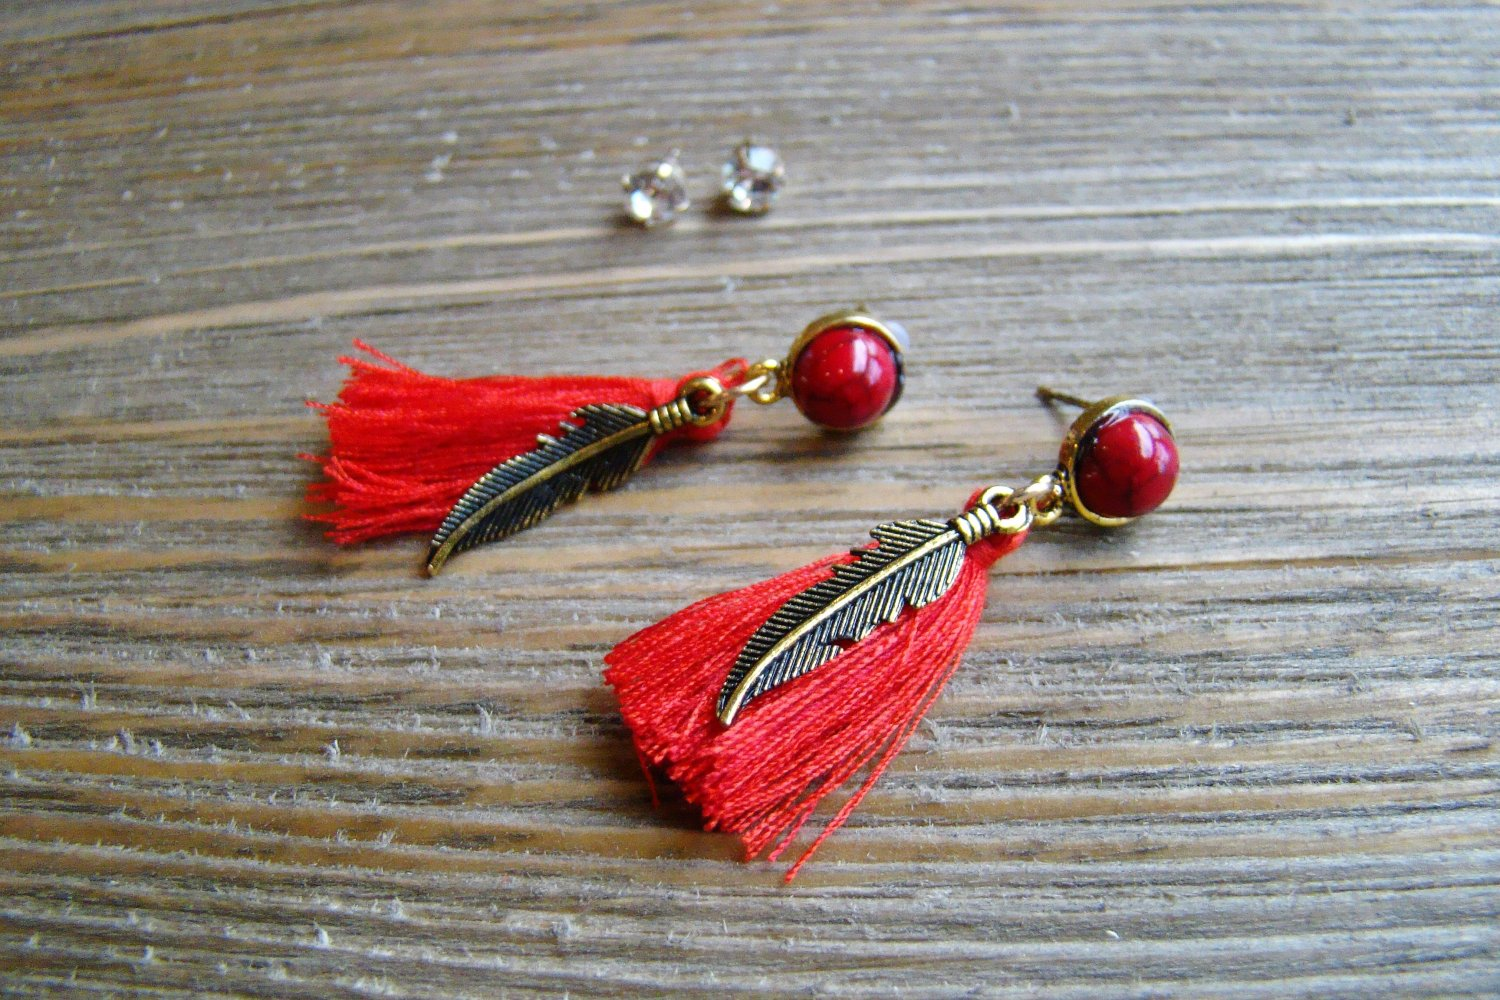 Gold Feather Red Tassel Rhinestone Dangle Earrings Set Boho Gypsy Cowgirl Fashion Jewelry